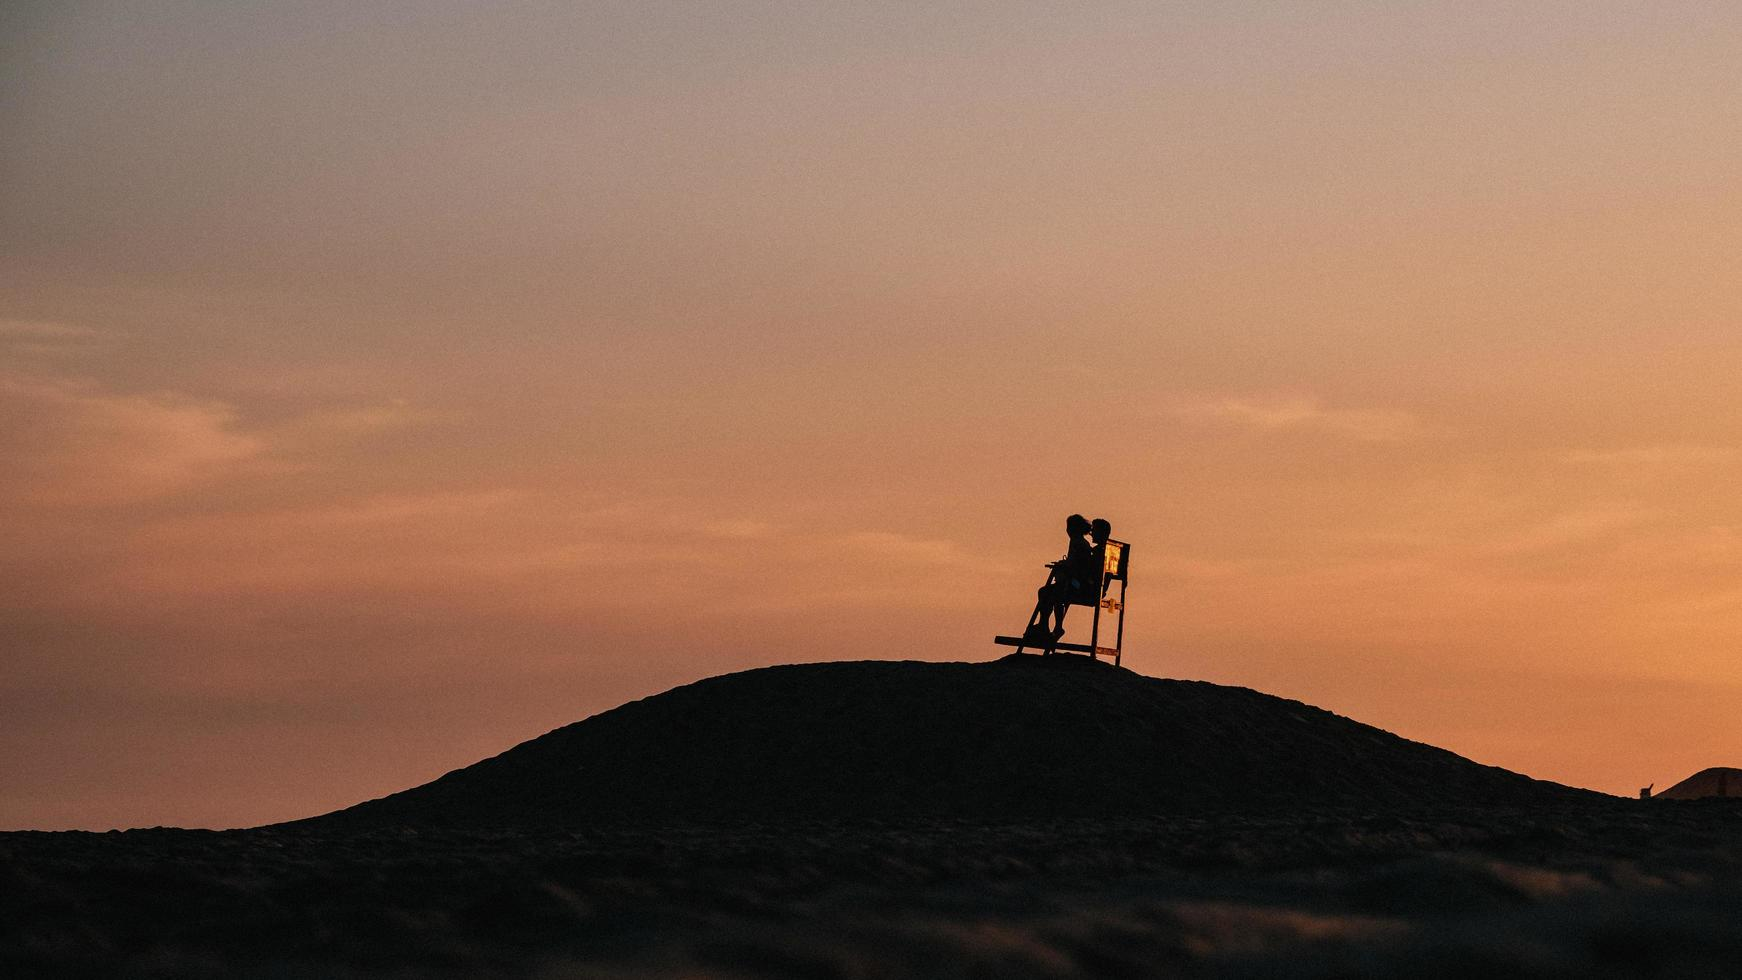 silhouette of 2 people standing on top of mountain during sunset photo